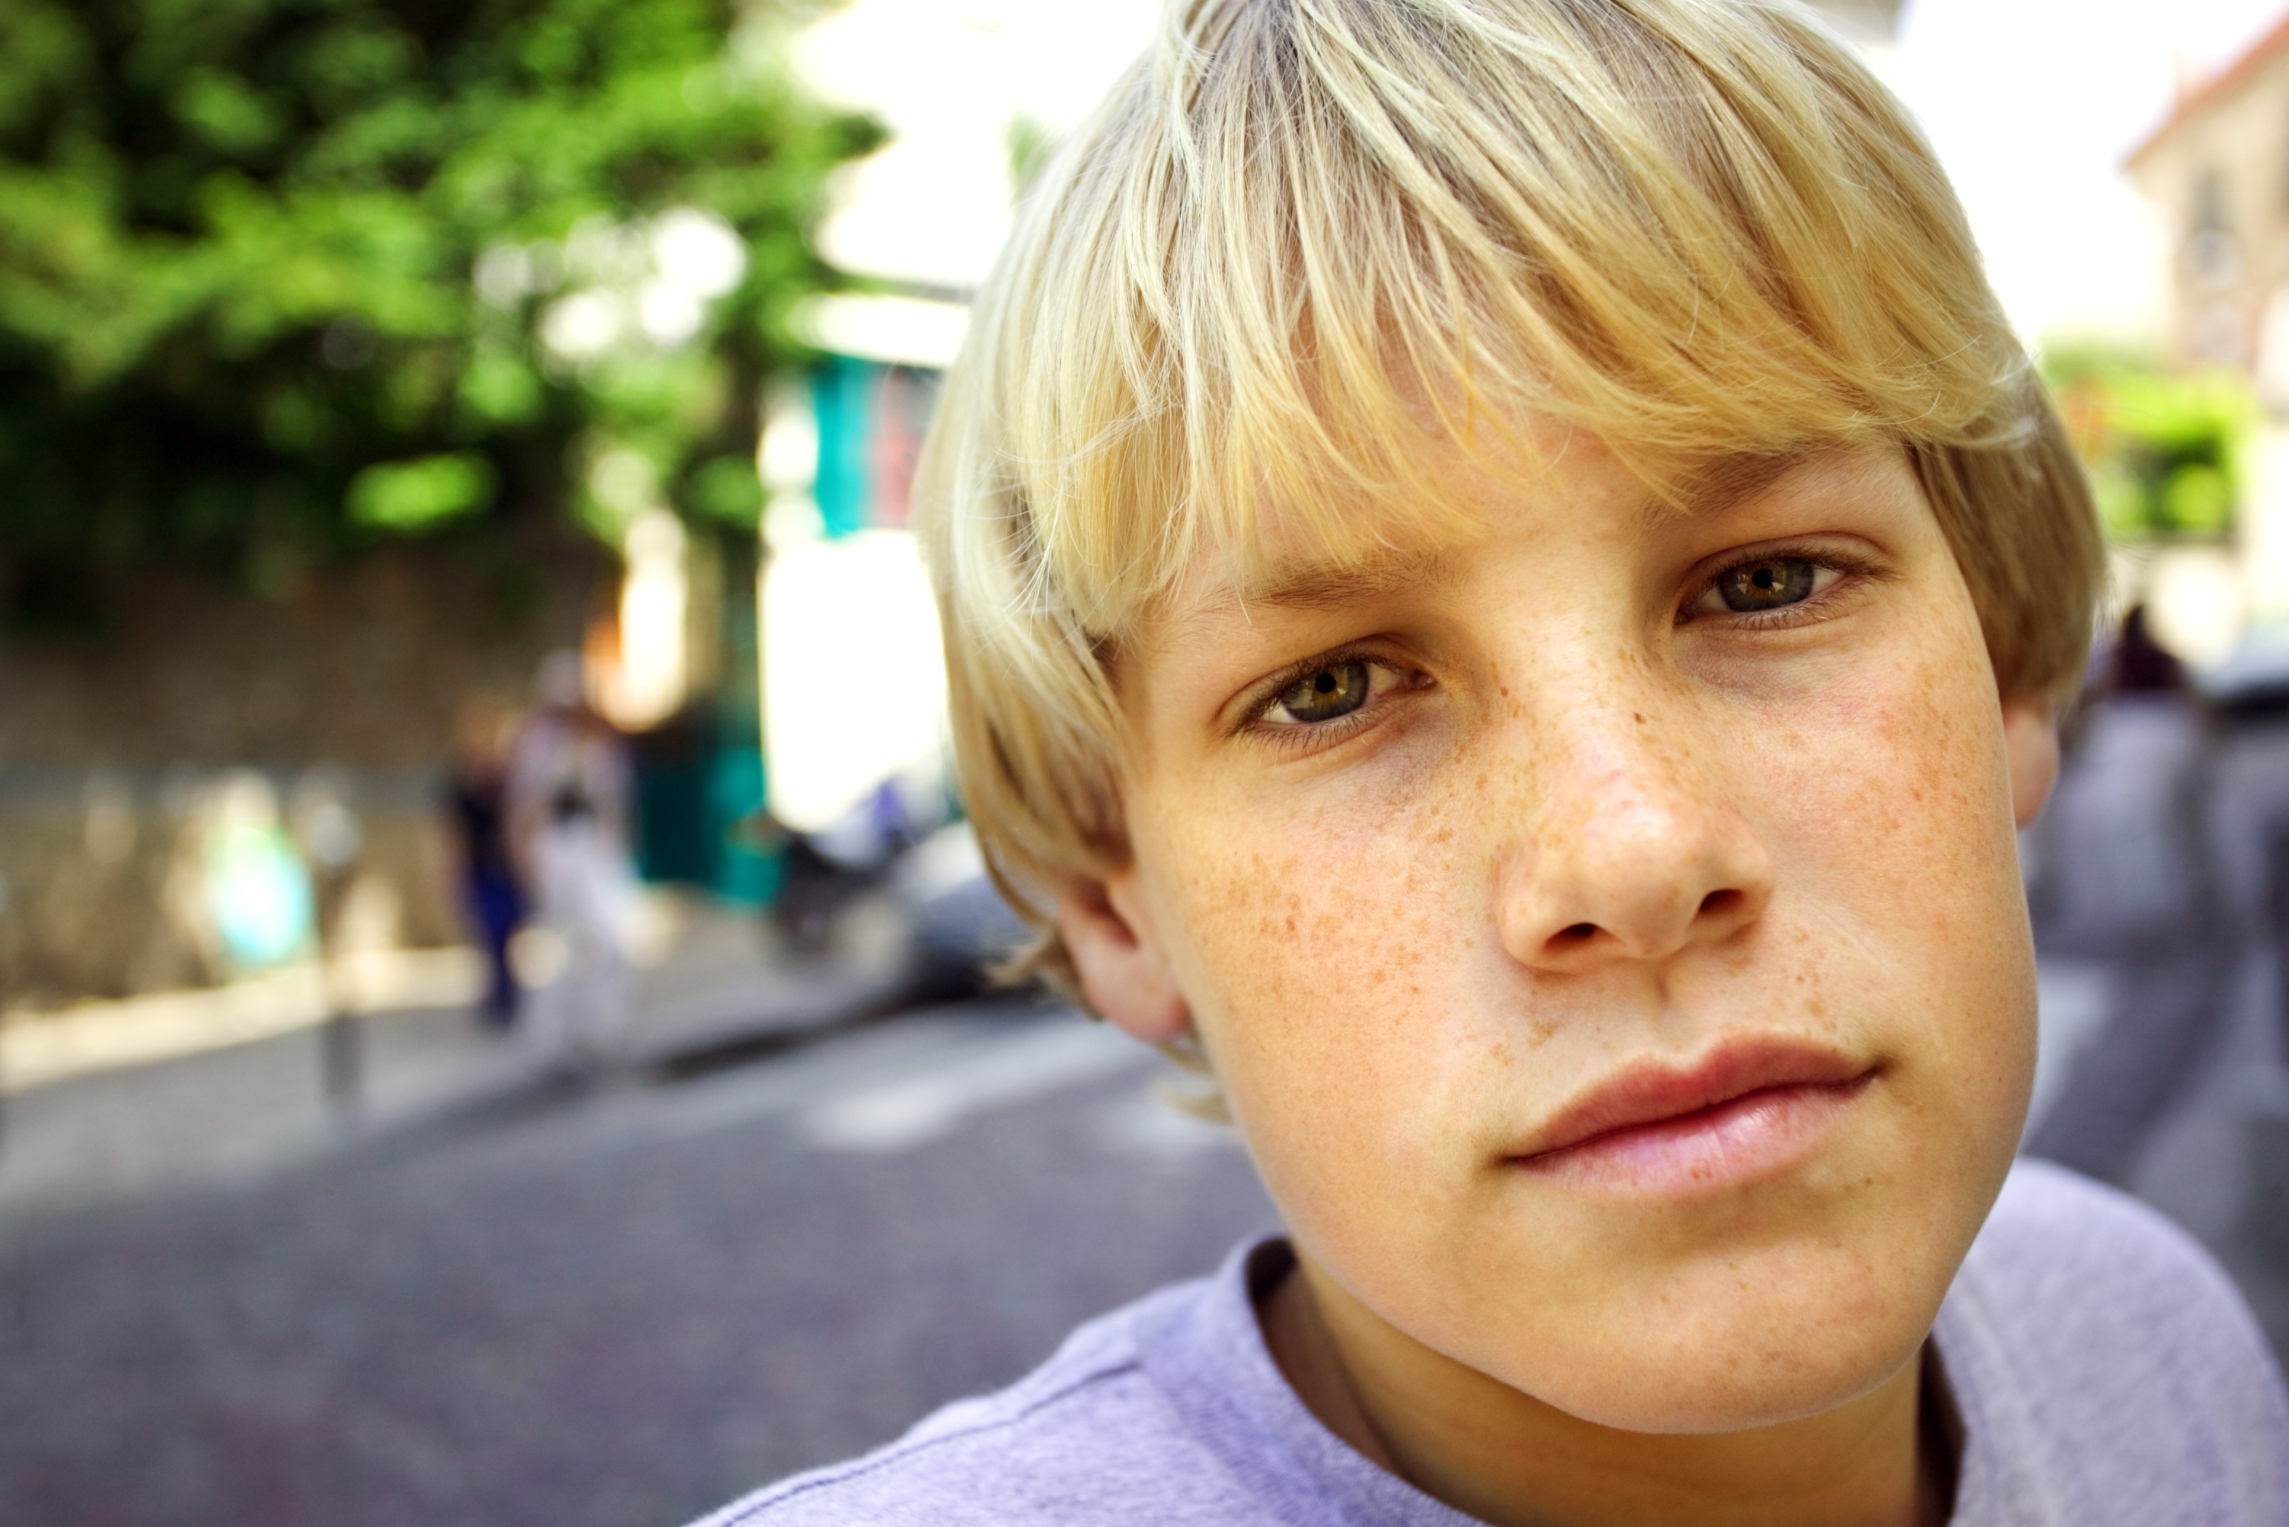 How To Cope With Autism In Teen Boys